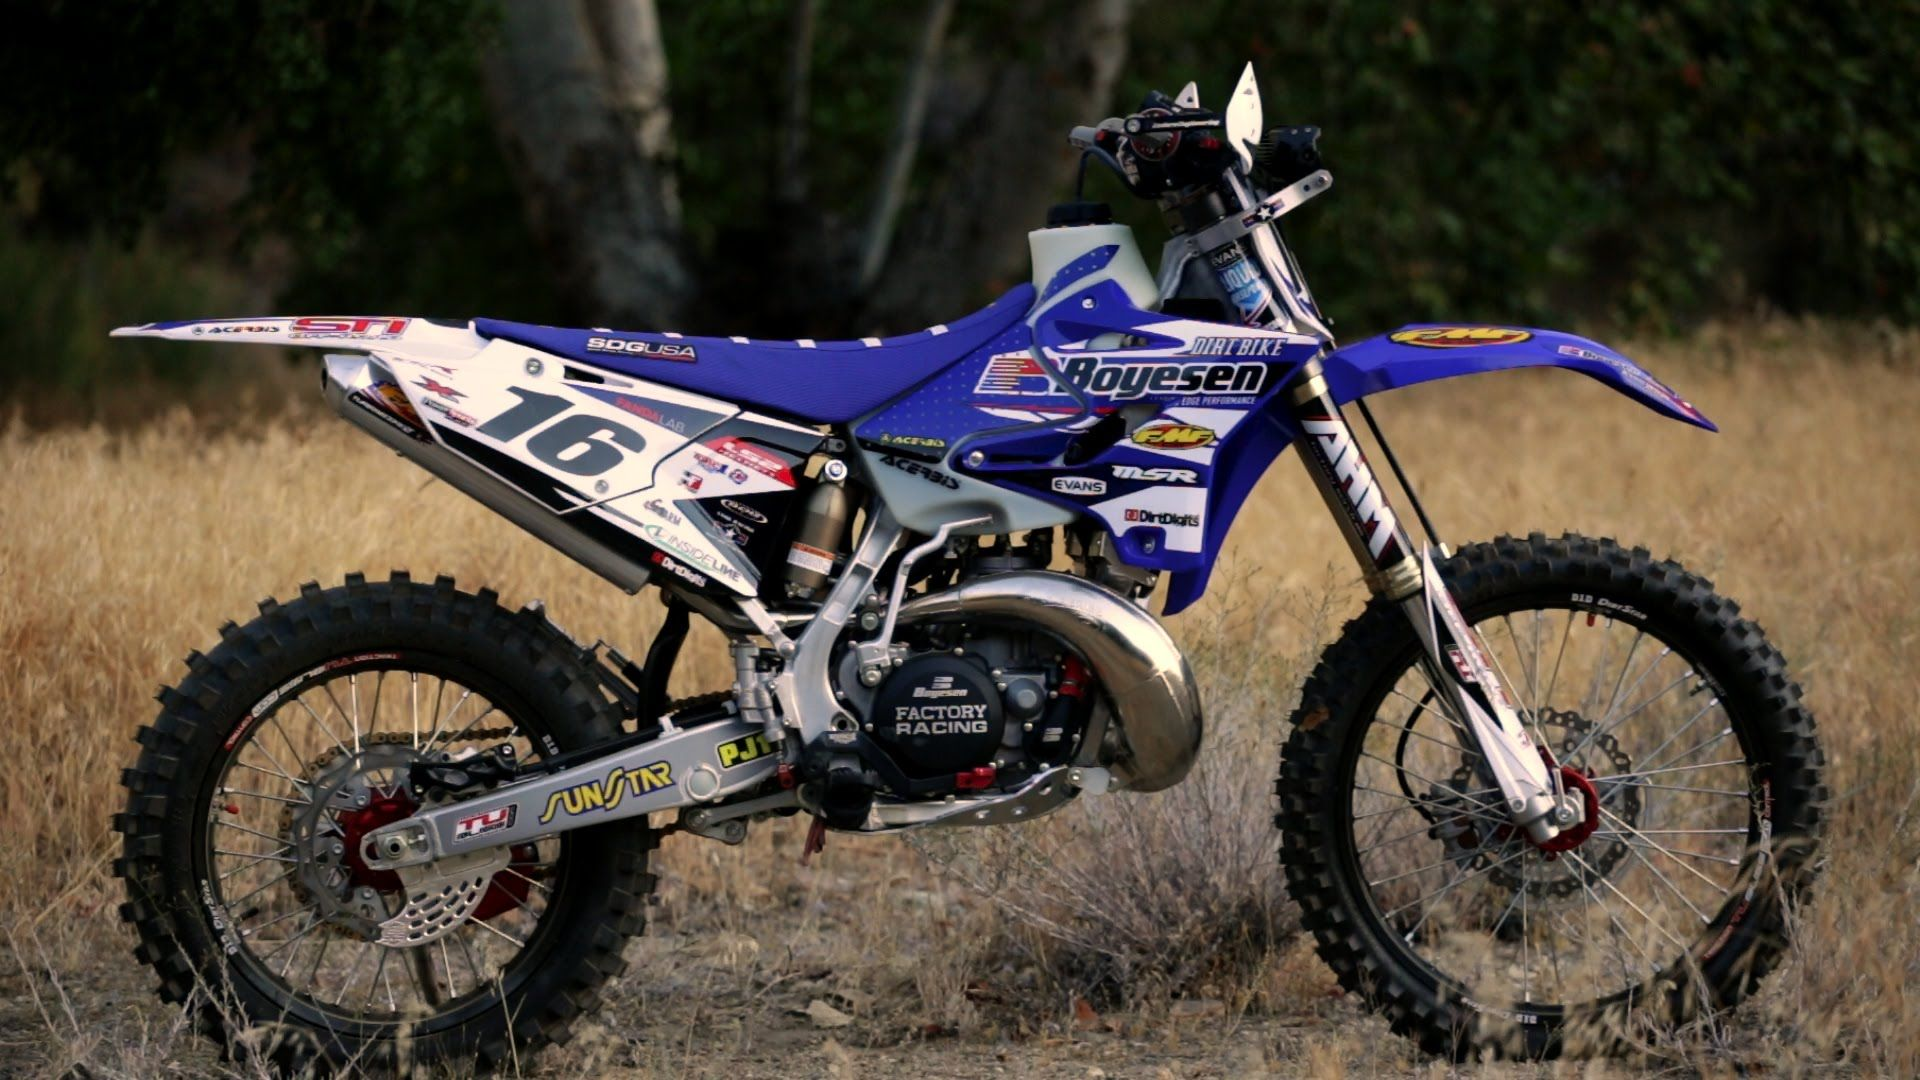 2 Stroke Revolution Project Yamaha Yz250x Dirt Bike Magazine